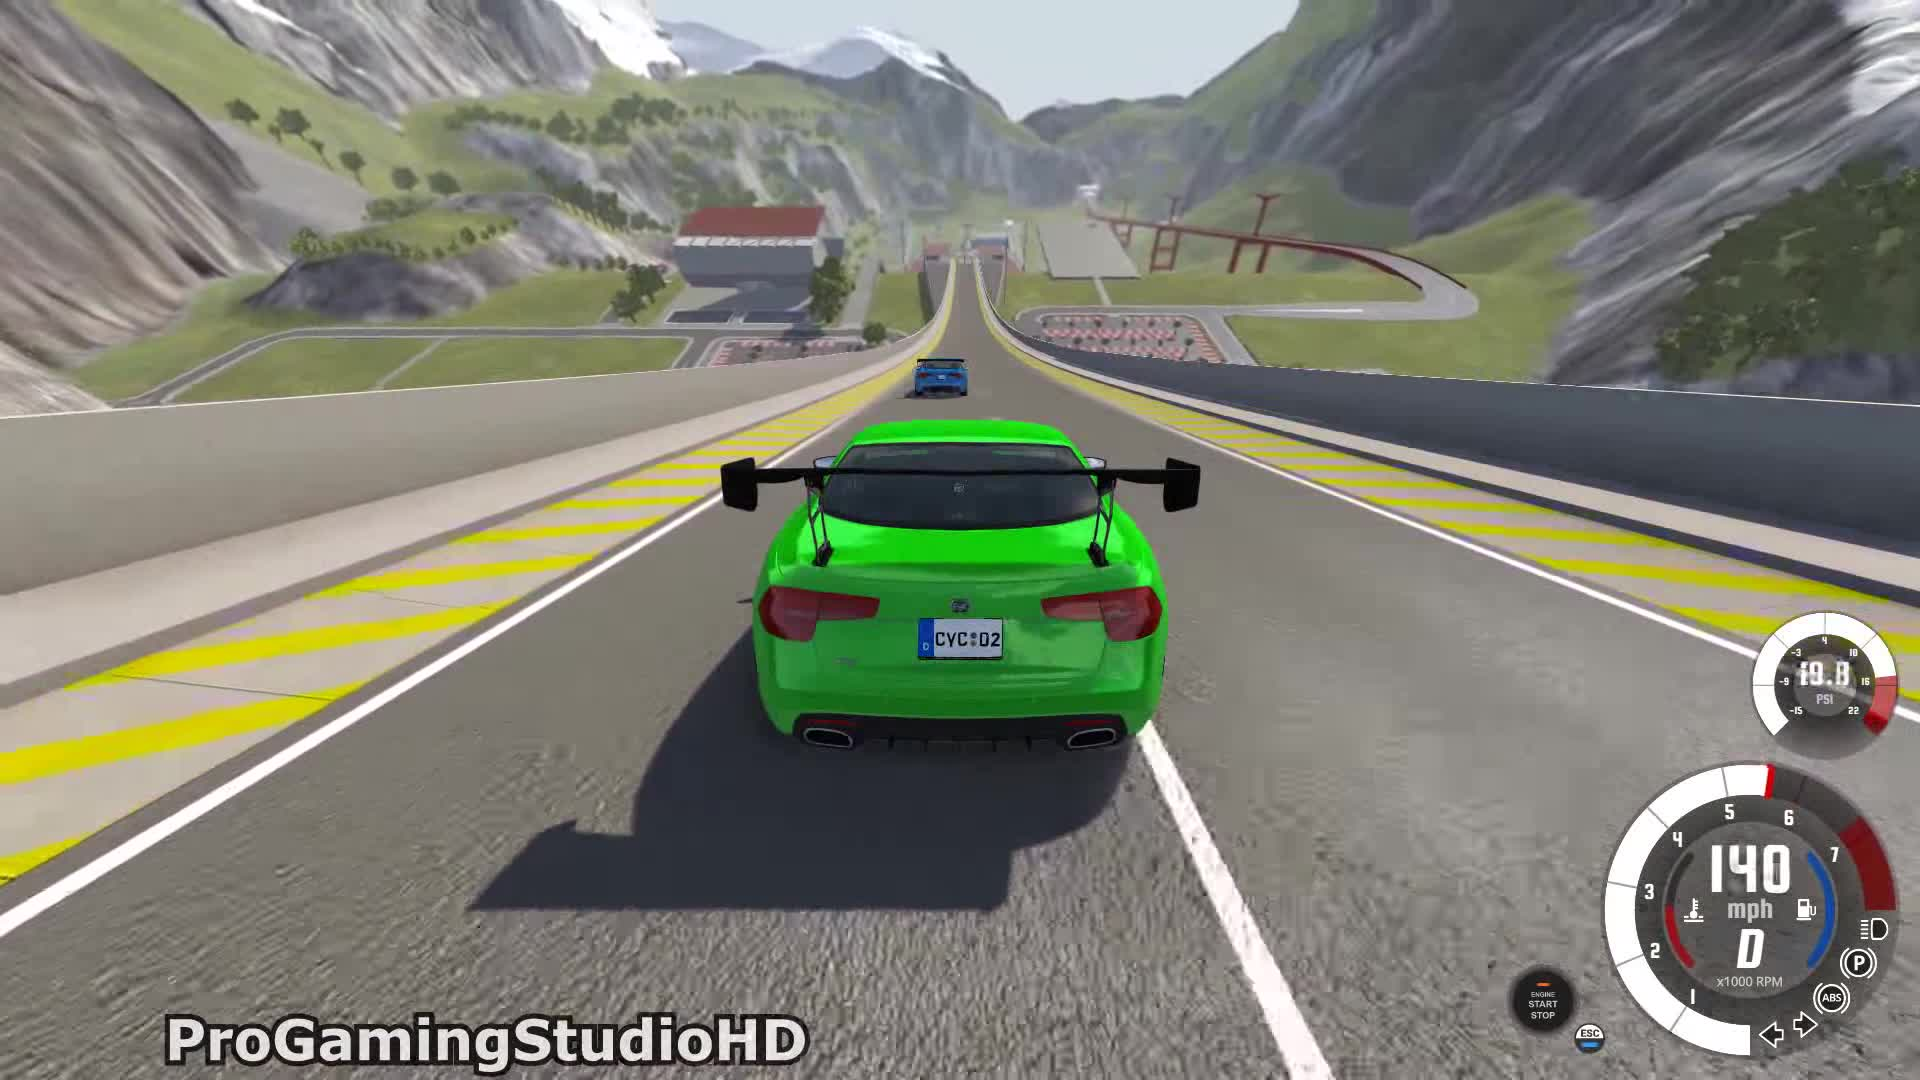 beamng, beamng drive, beamng drive crashes, beamng drive crazy falls, beamng drive crazy jumps, beamng drive jumps, beamng drive satisfying, beamng drive shredding, beamng.drive, epic, BeamNG Drive Crazy Crash GIFs